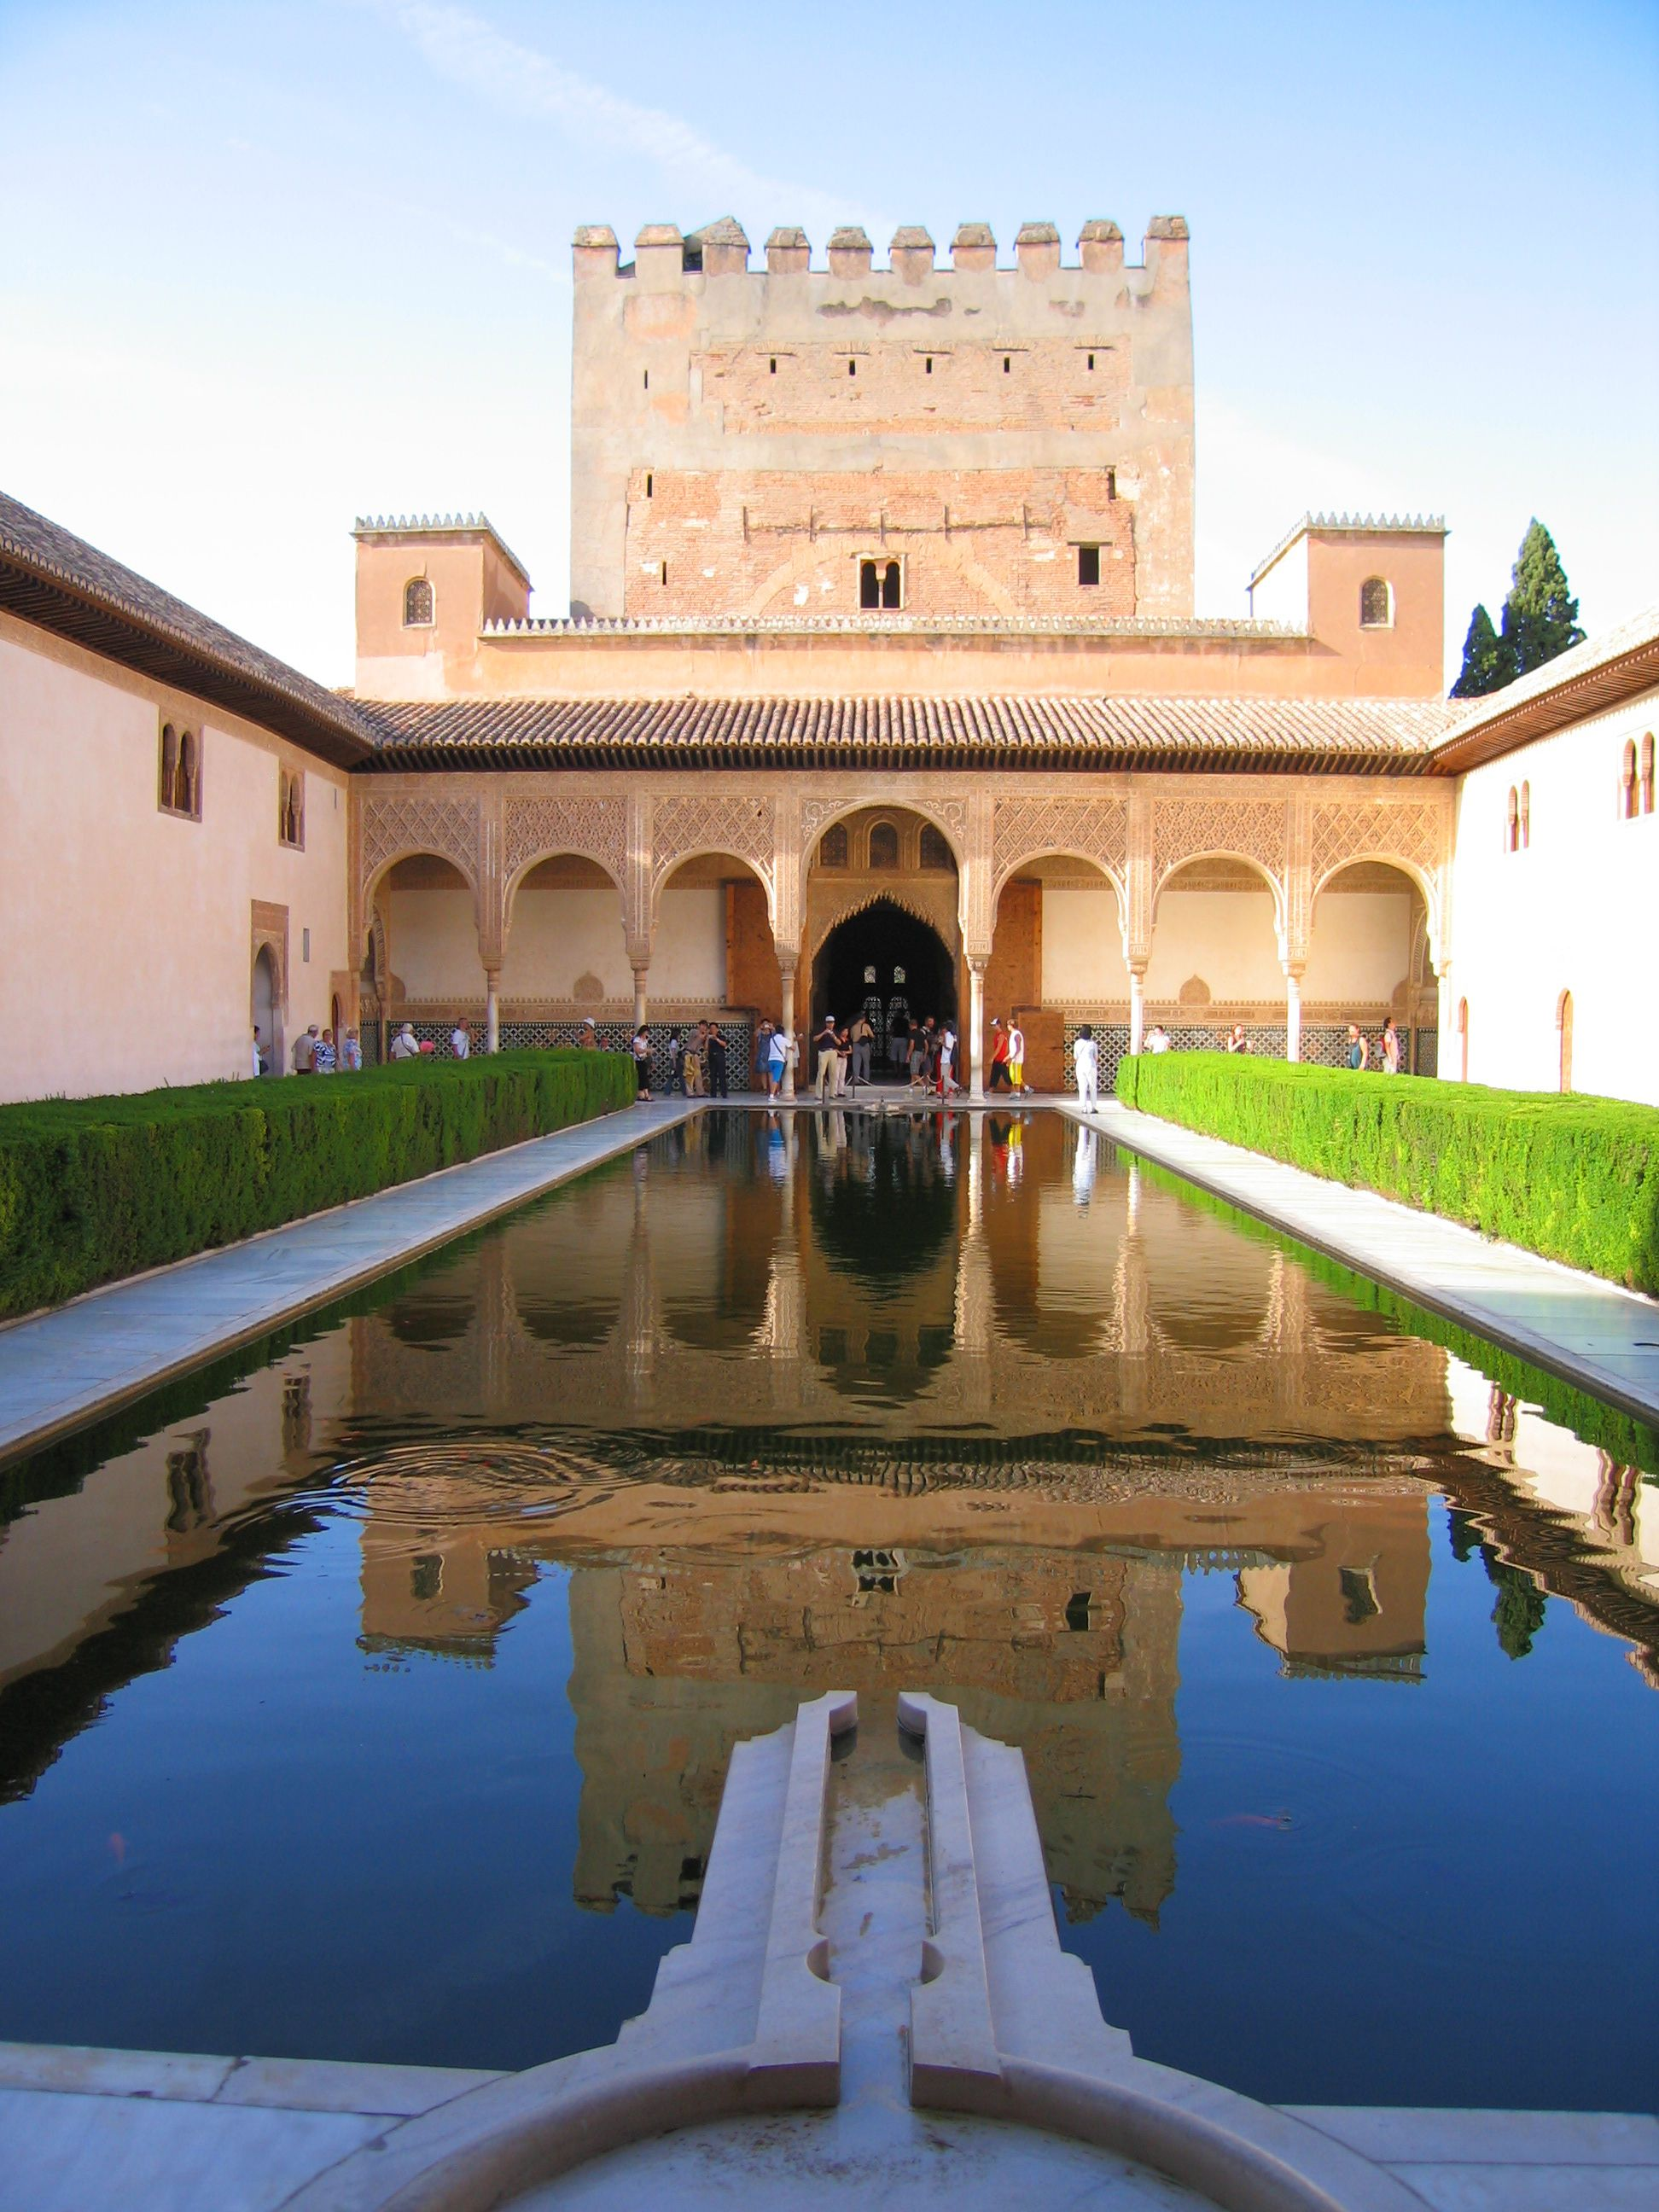 the alhambra a palace and fortress complex located in granada